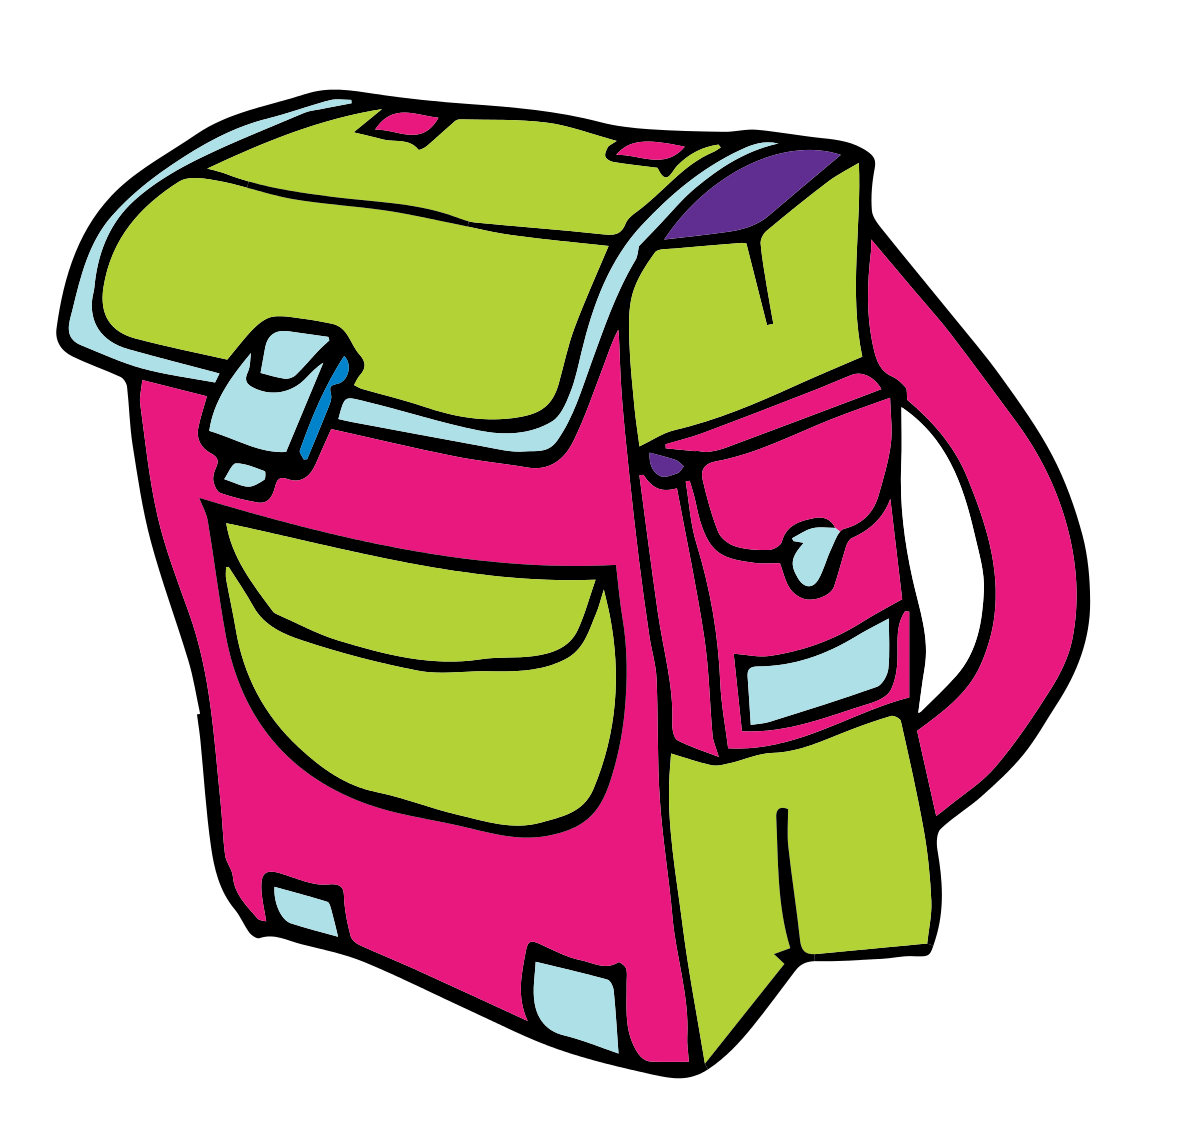 School bag images clip. Clipart backpack four